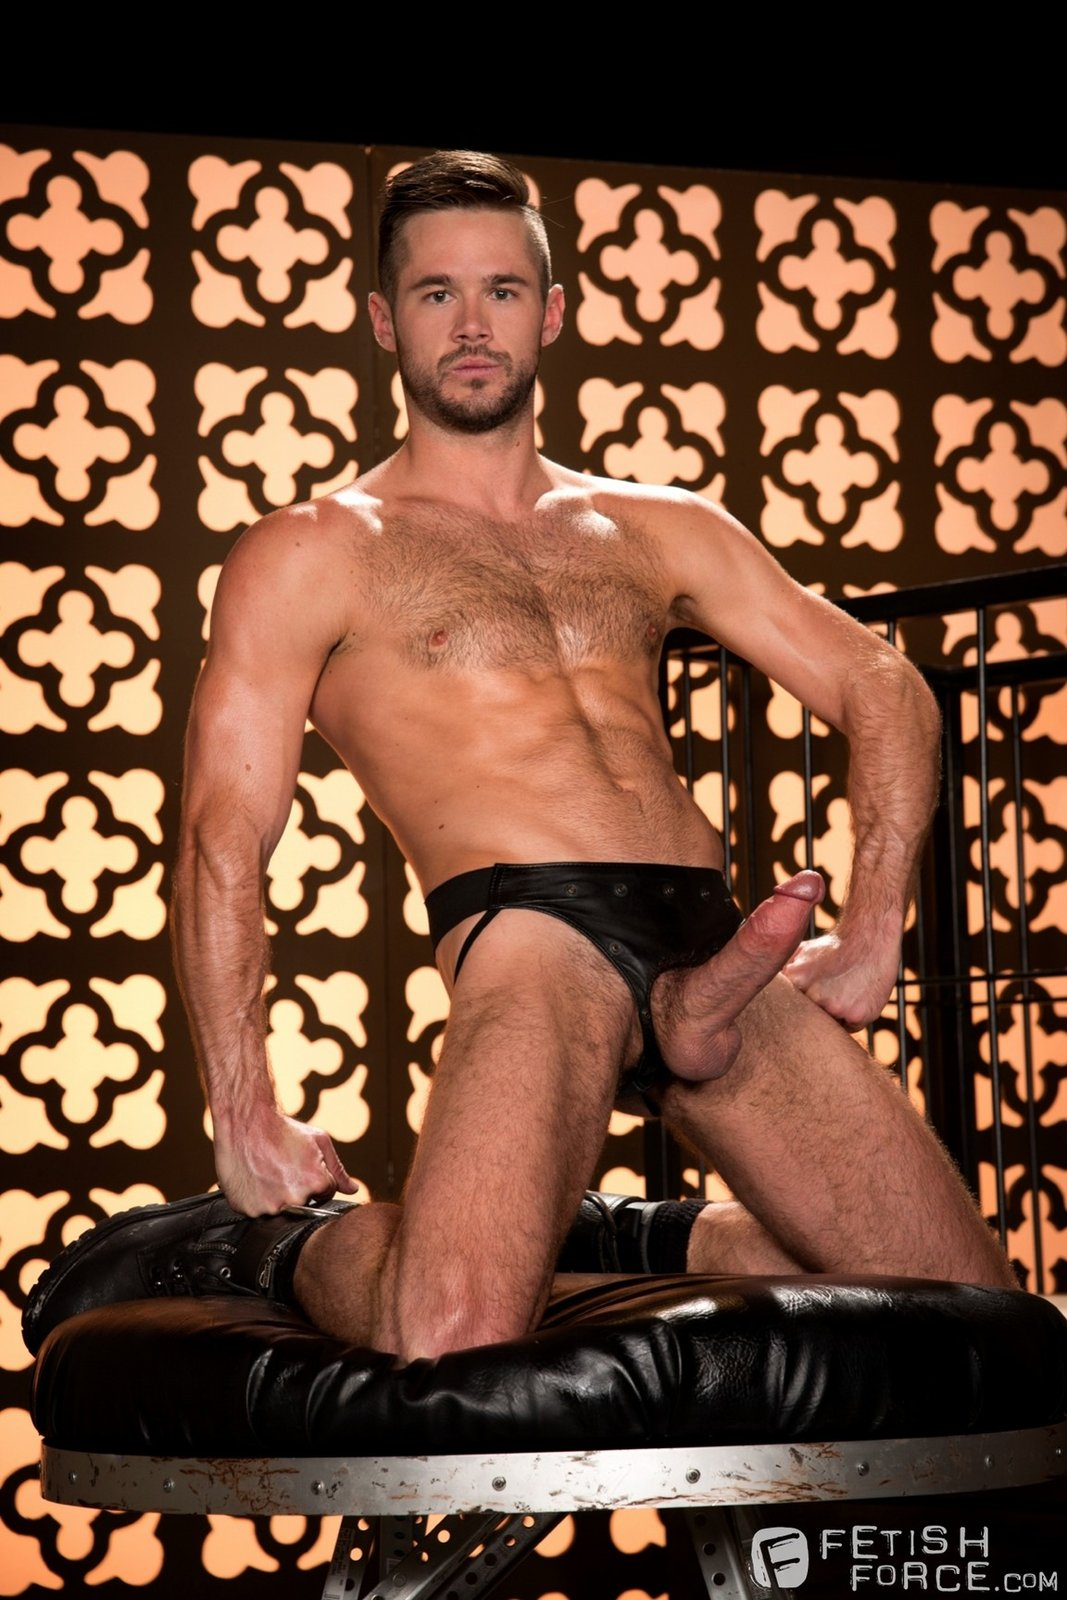 Discover one of the best resource for gay dating in Dallas